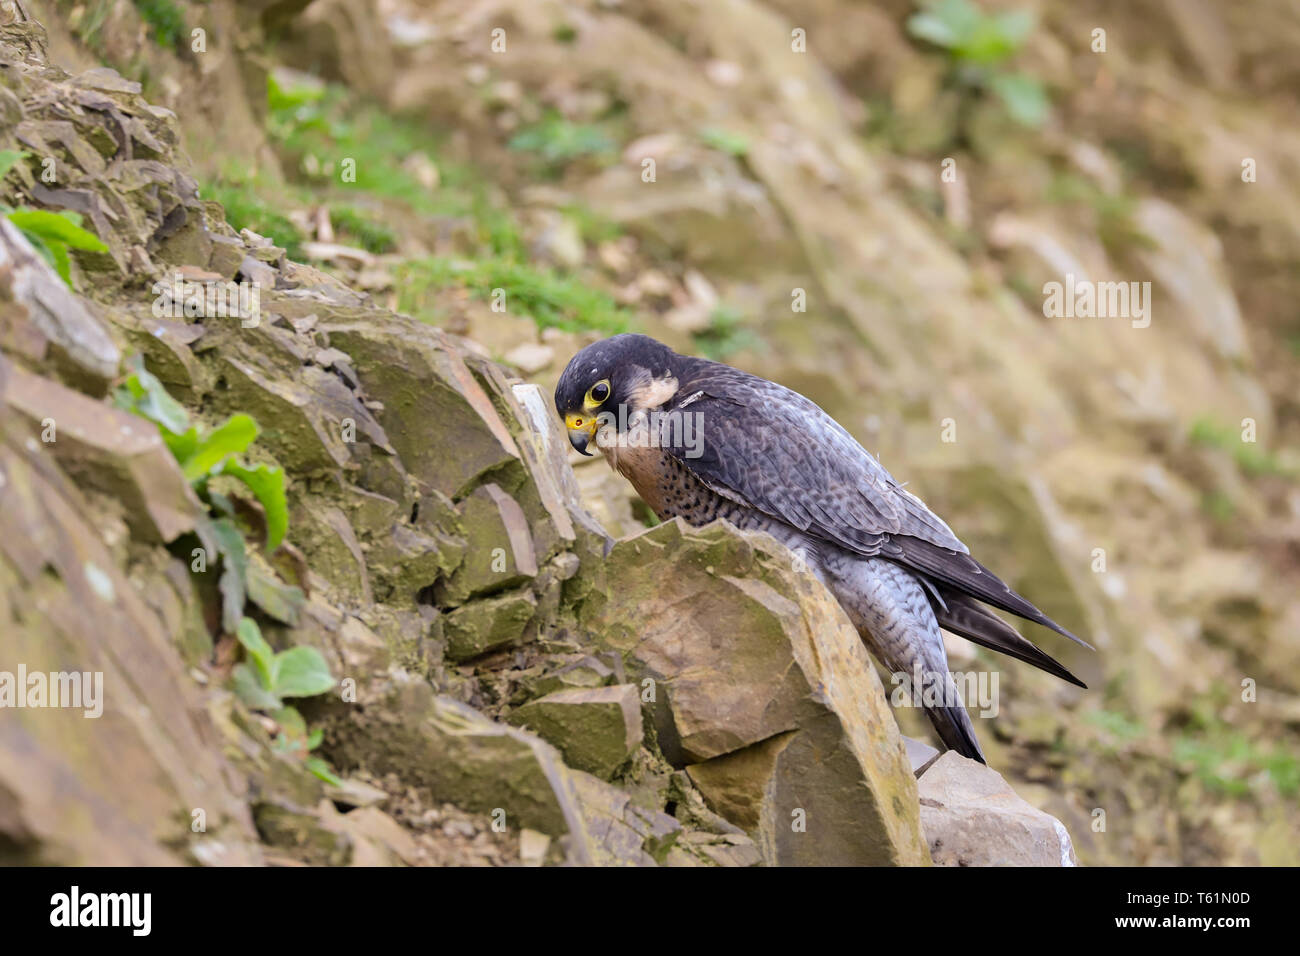 Peregrine Falcon (Falco peregrinus) bird of prey.  Taken in the mid-Wales countryside, Wales, UK - Stock Image